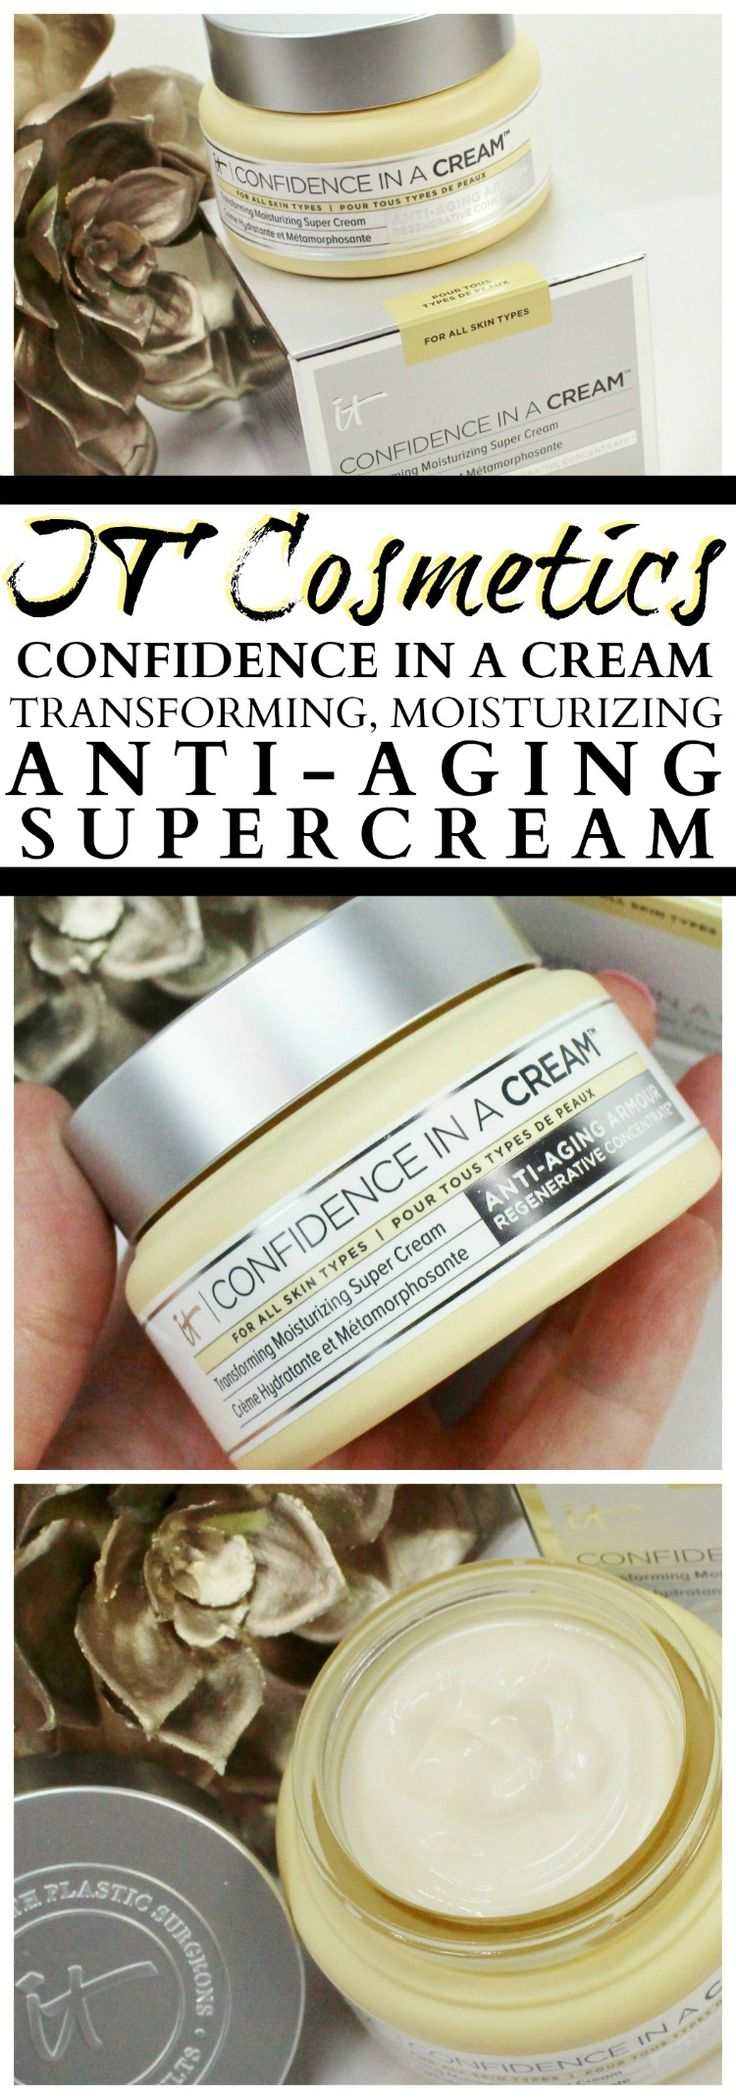 IT Cosmetics Confidence in a Cream Skincare Review